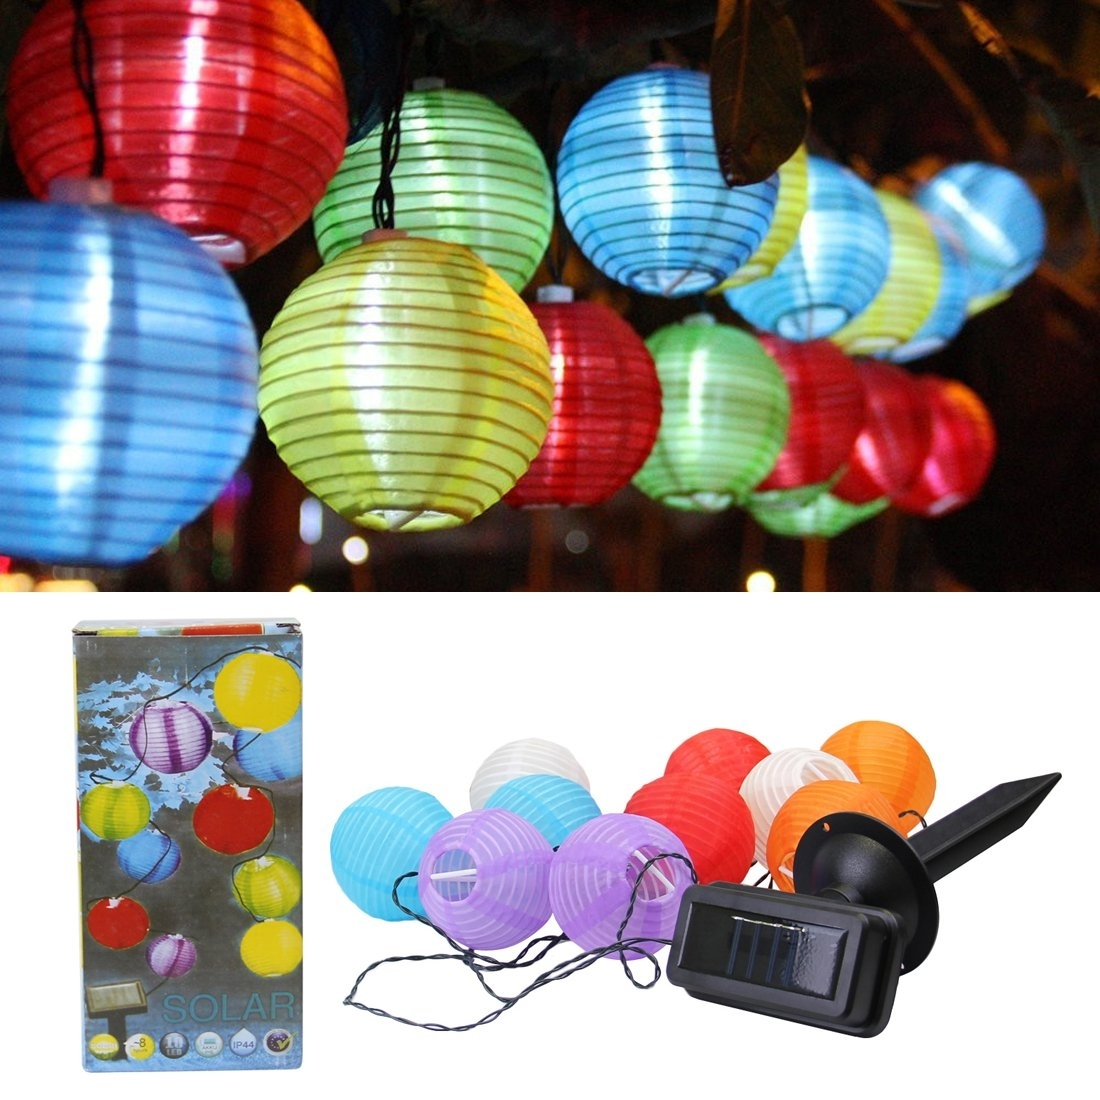 Cheap Solar Powered Lanterns Outdoor, Find Solar Powered Lanterns intended for Colorful Outdoor Lanterns (Image 6 of 20)